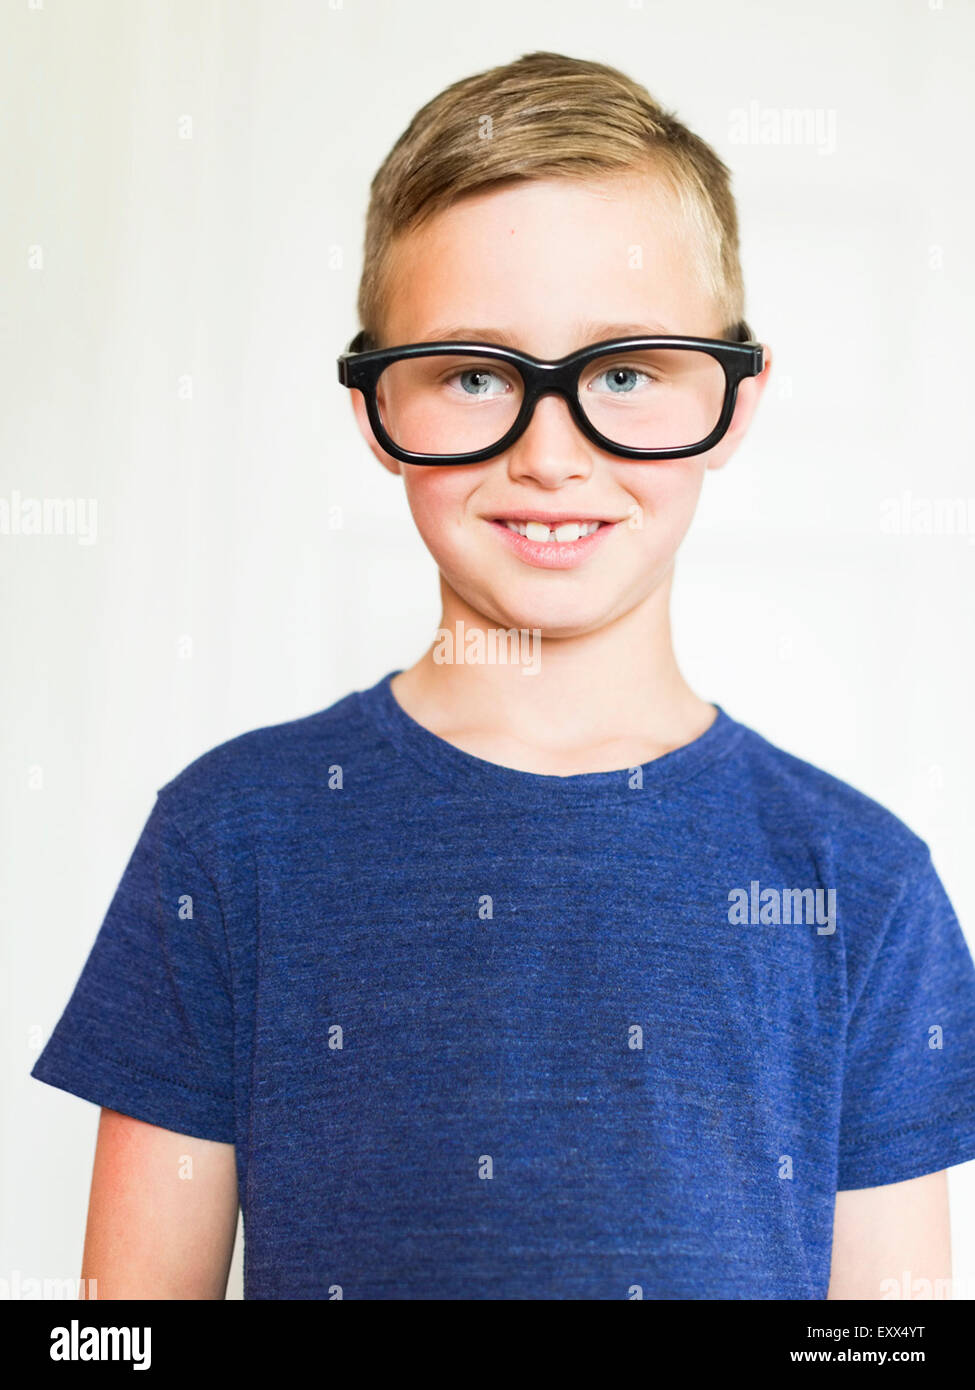 Portrait of boy (6-7) wearing eyeglasses - Stock Image